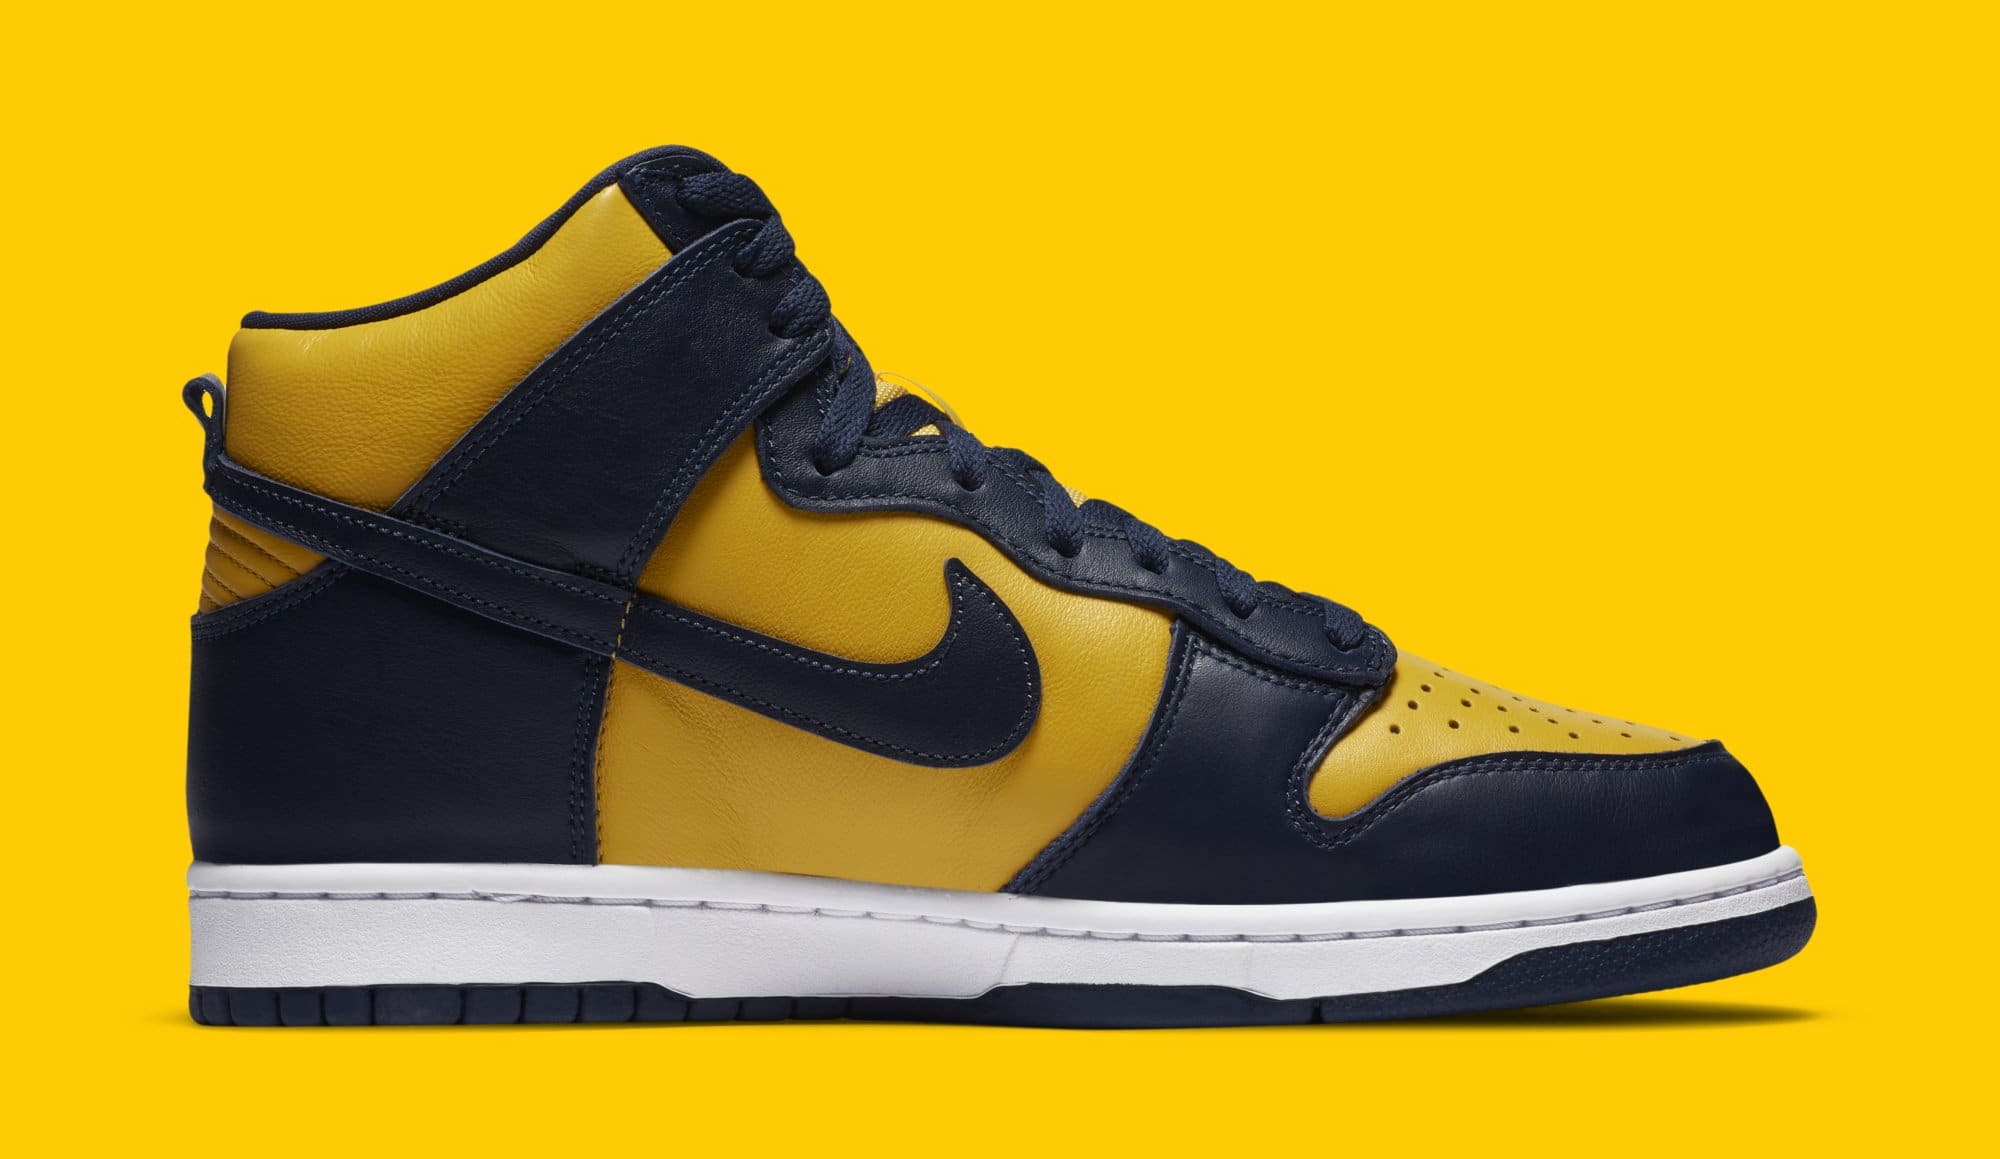 Nike Dunk High SP 'Michigan' CZ8149-700 Medial